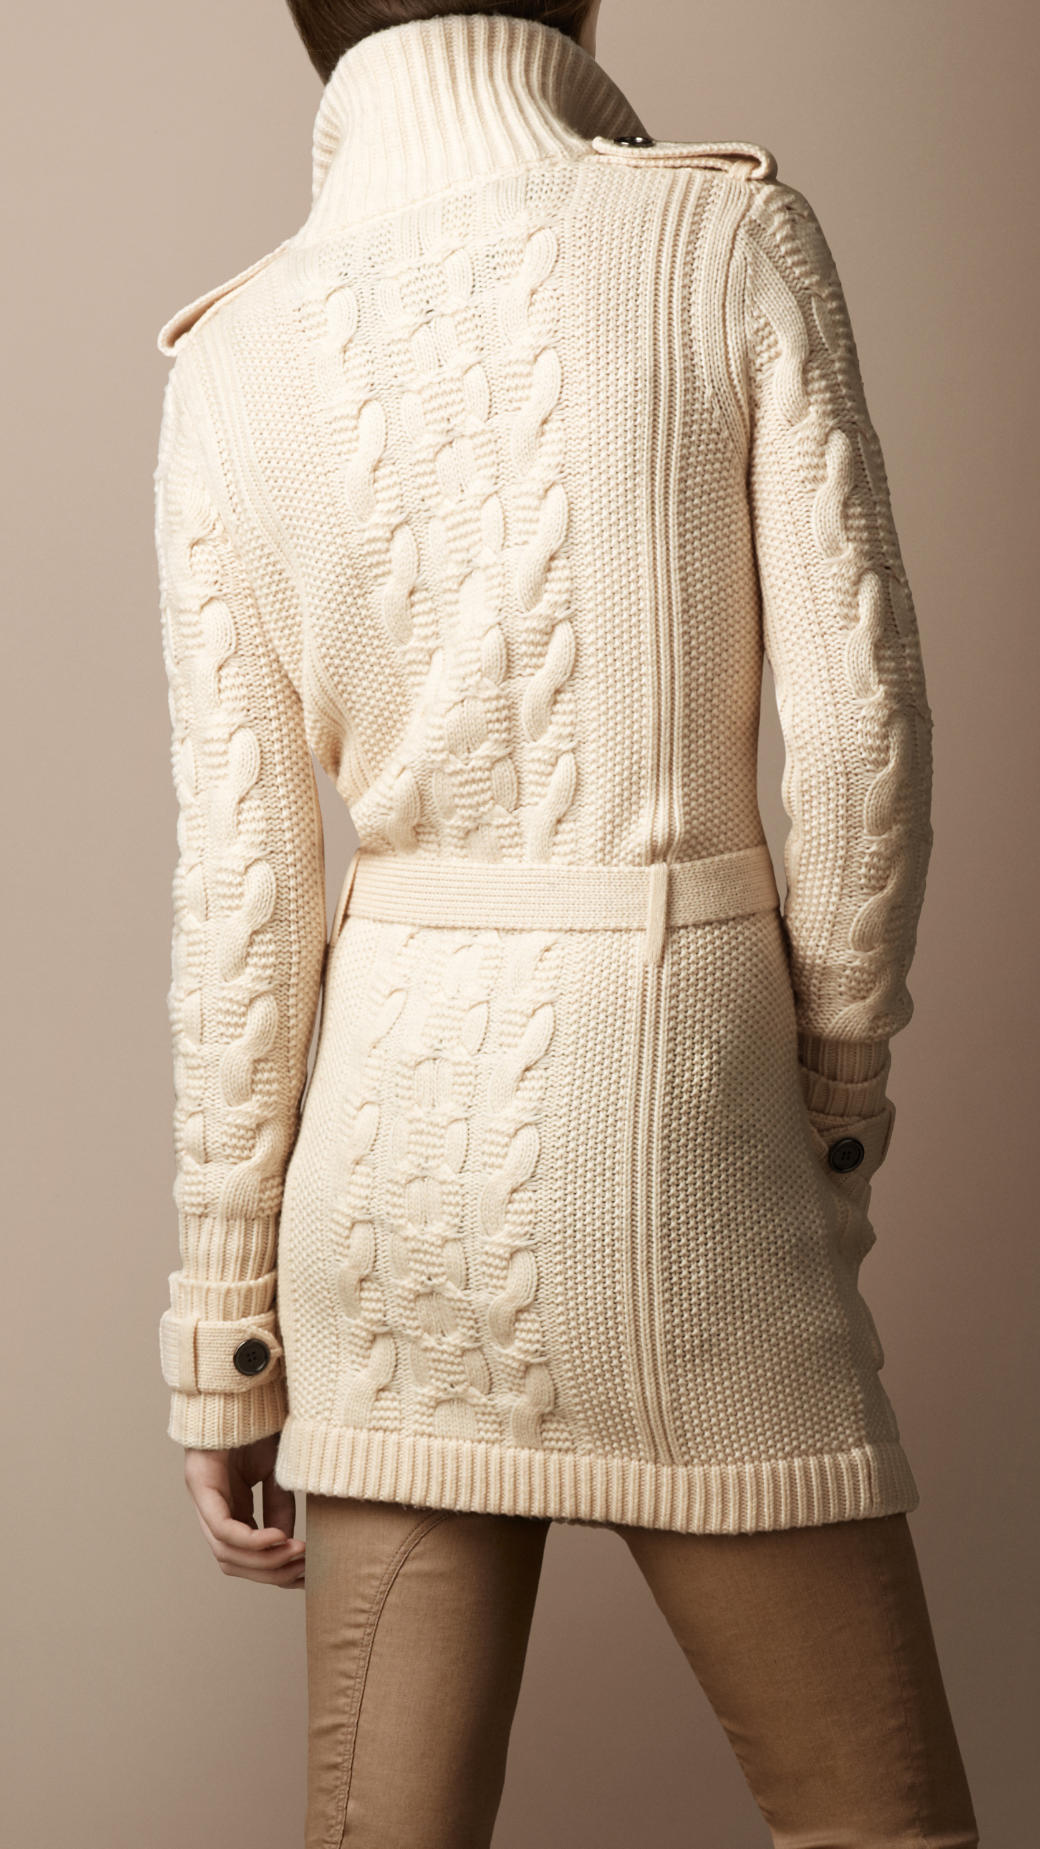 Lyst  Burberry Brit Wool Cashmere Cable Knit Cardigan in Natural